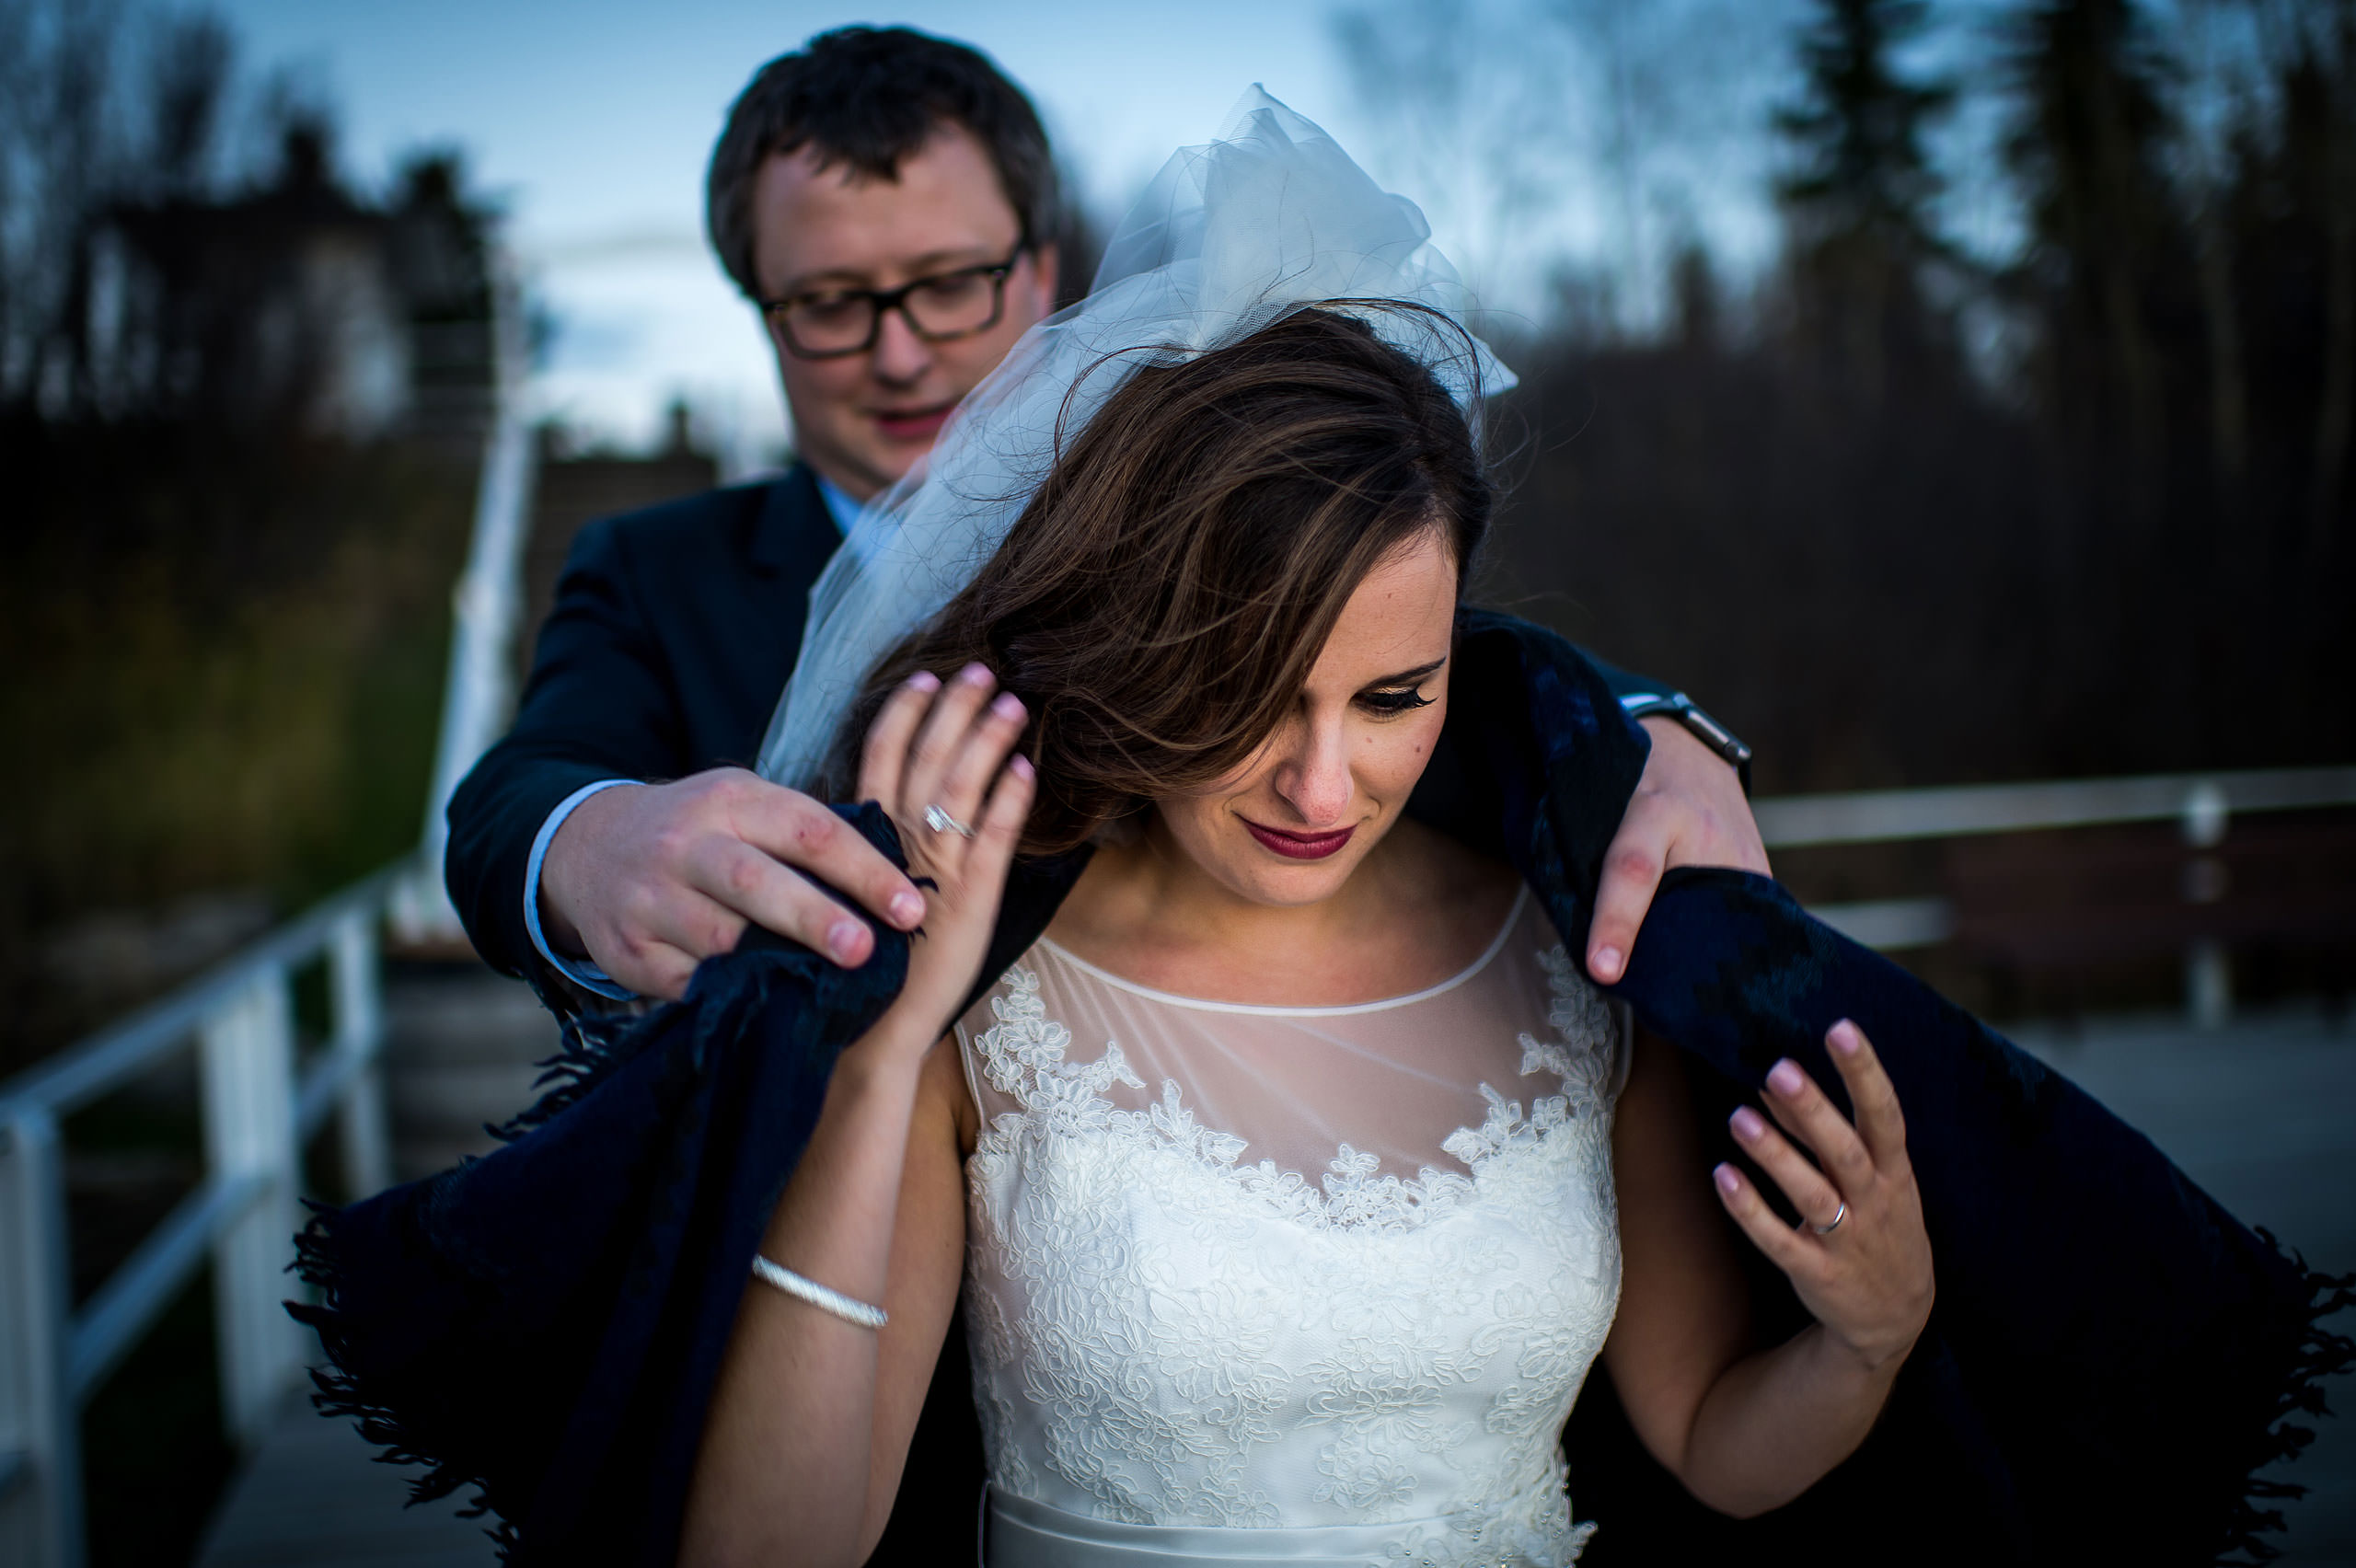 a groom offering his jacket to his bride by Calgary Jewish Wedding Photographer Sean LeBlanc